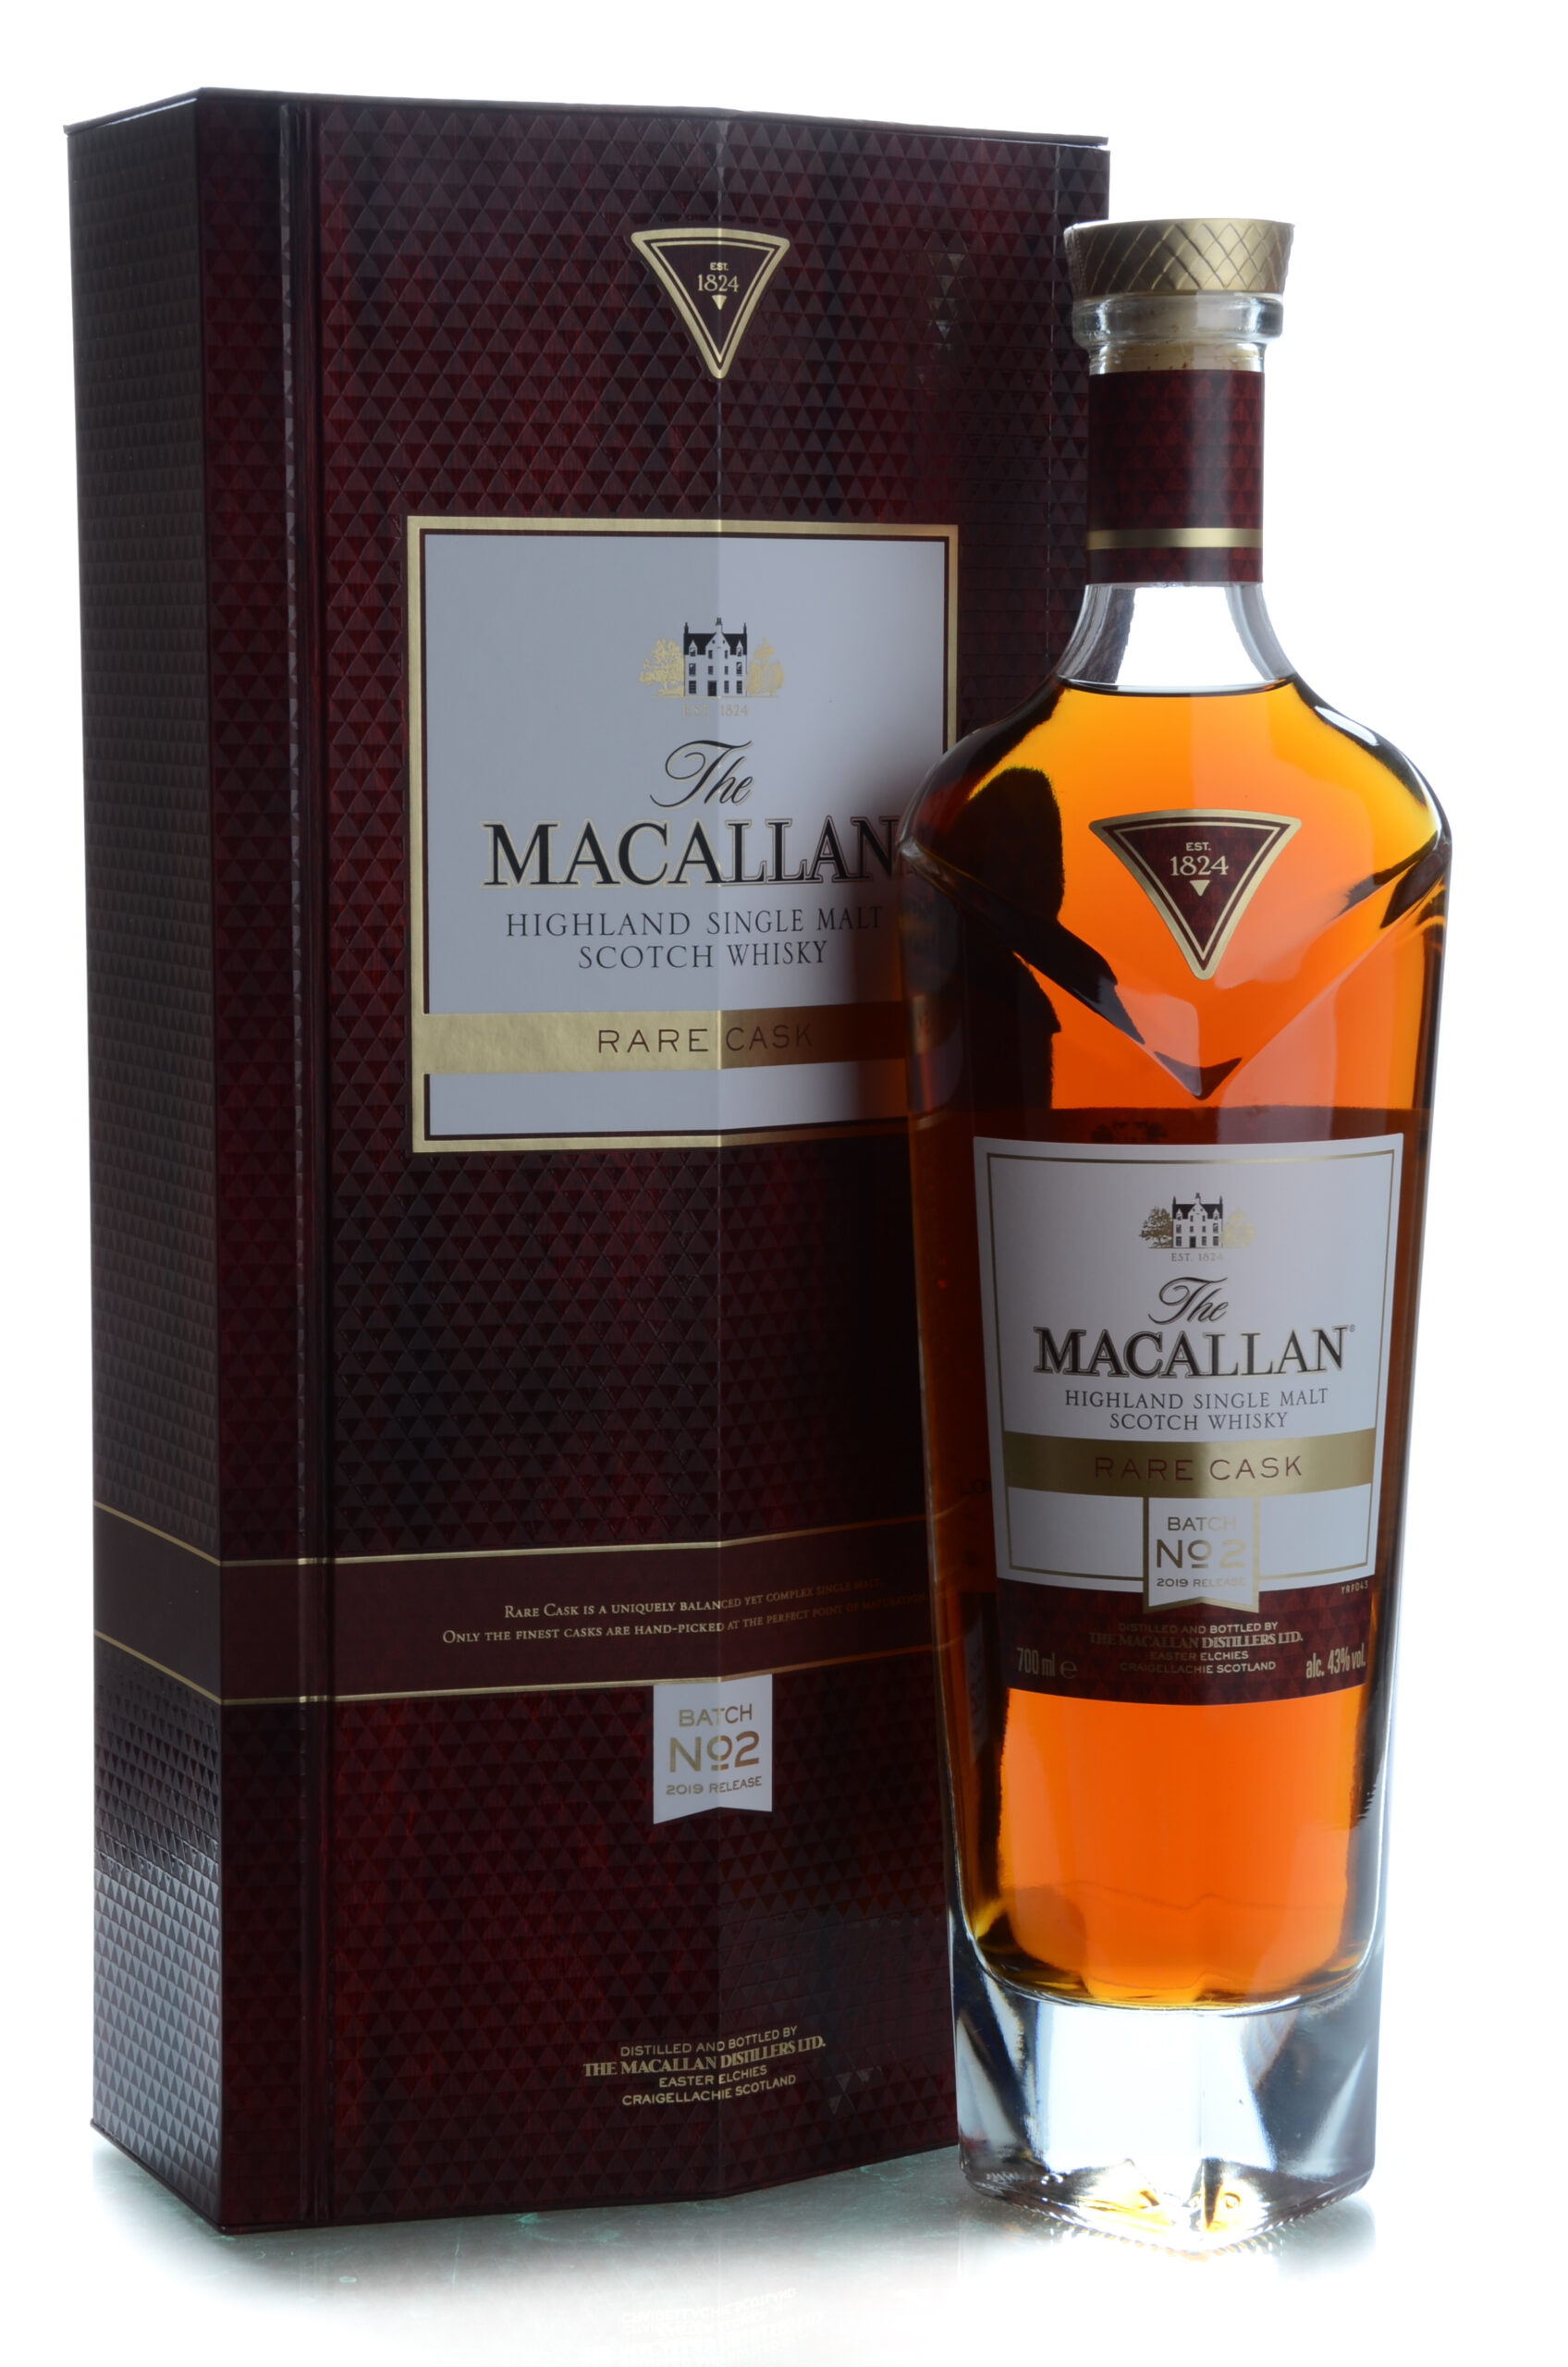 The Macallan Rare cask n02